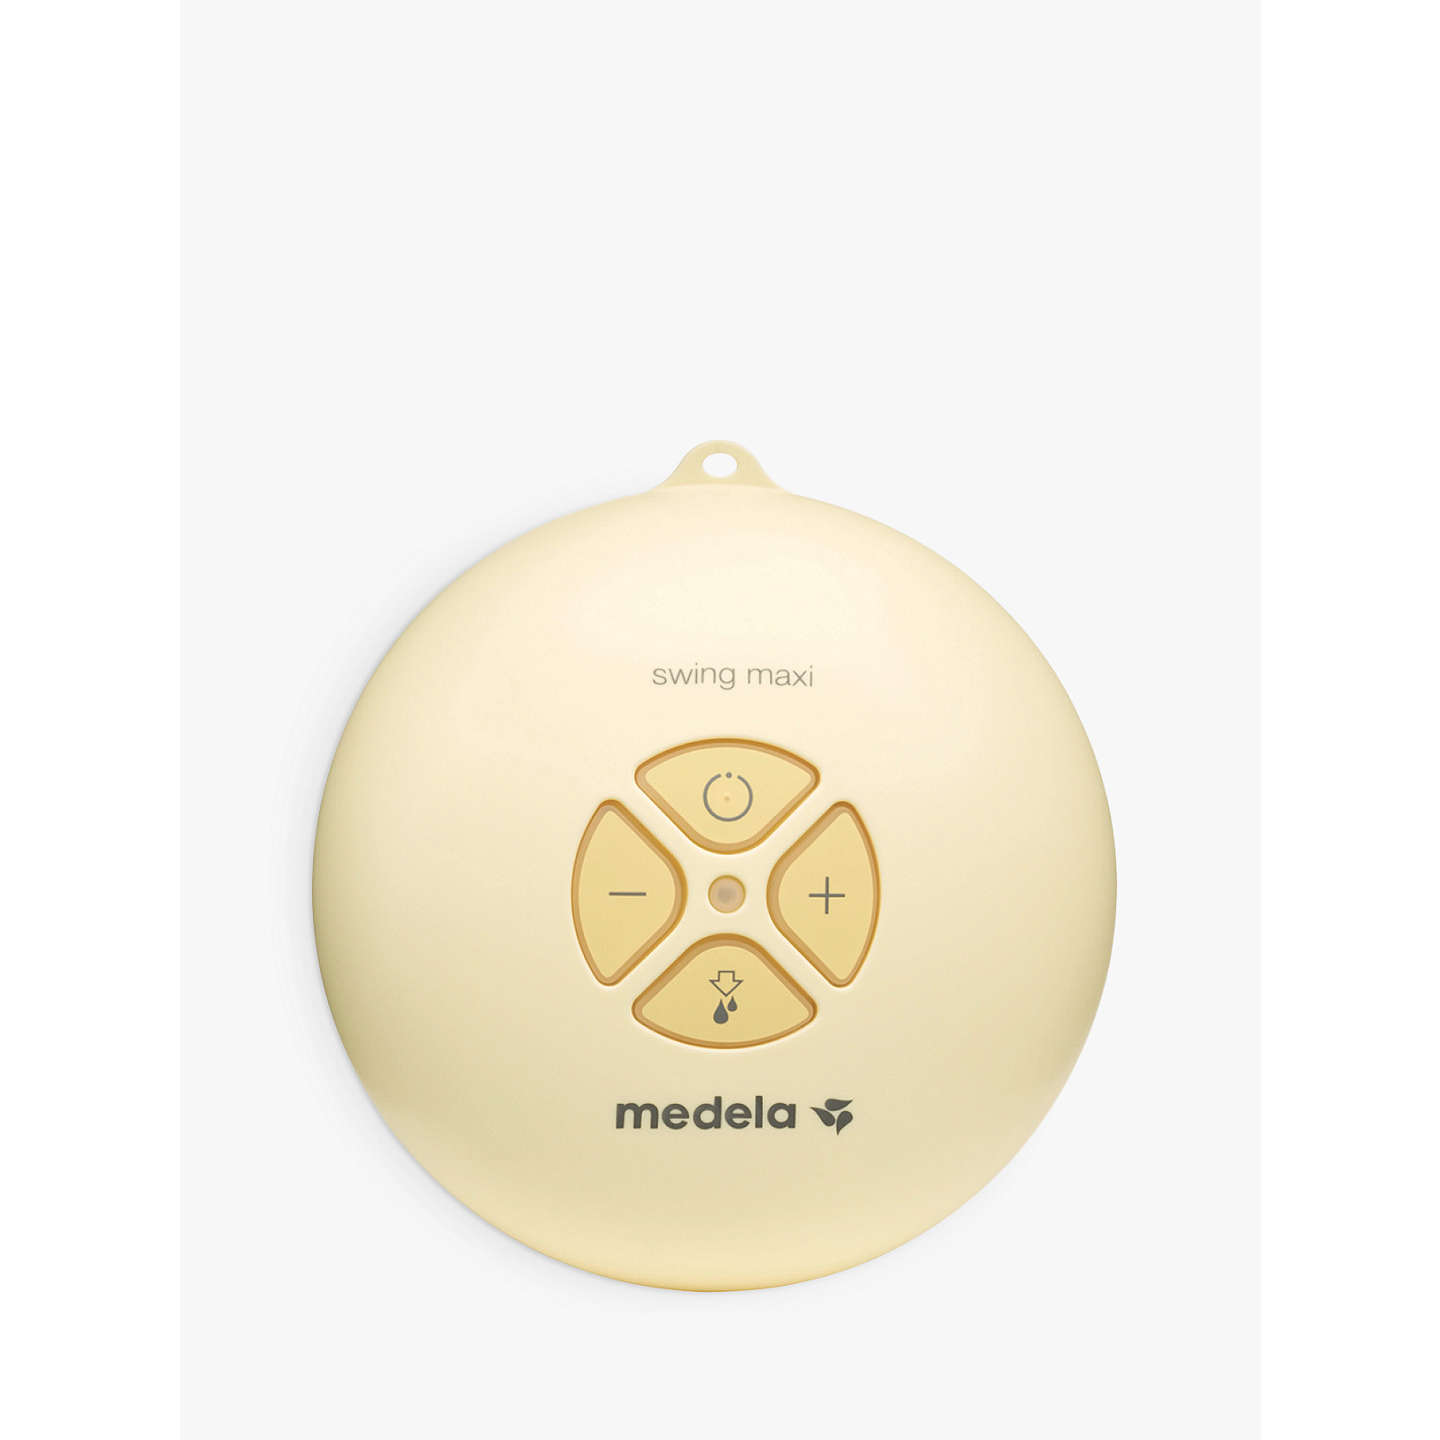 BuyMedela Swing Maxi Double Electric Breast Pump Online at johnlewis.com